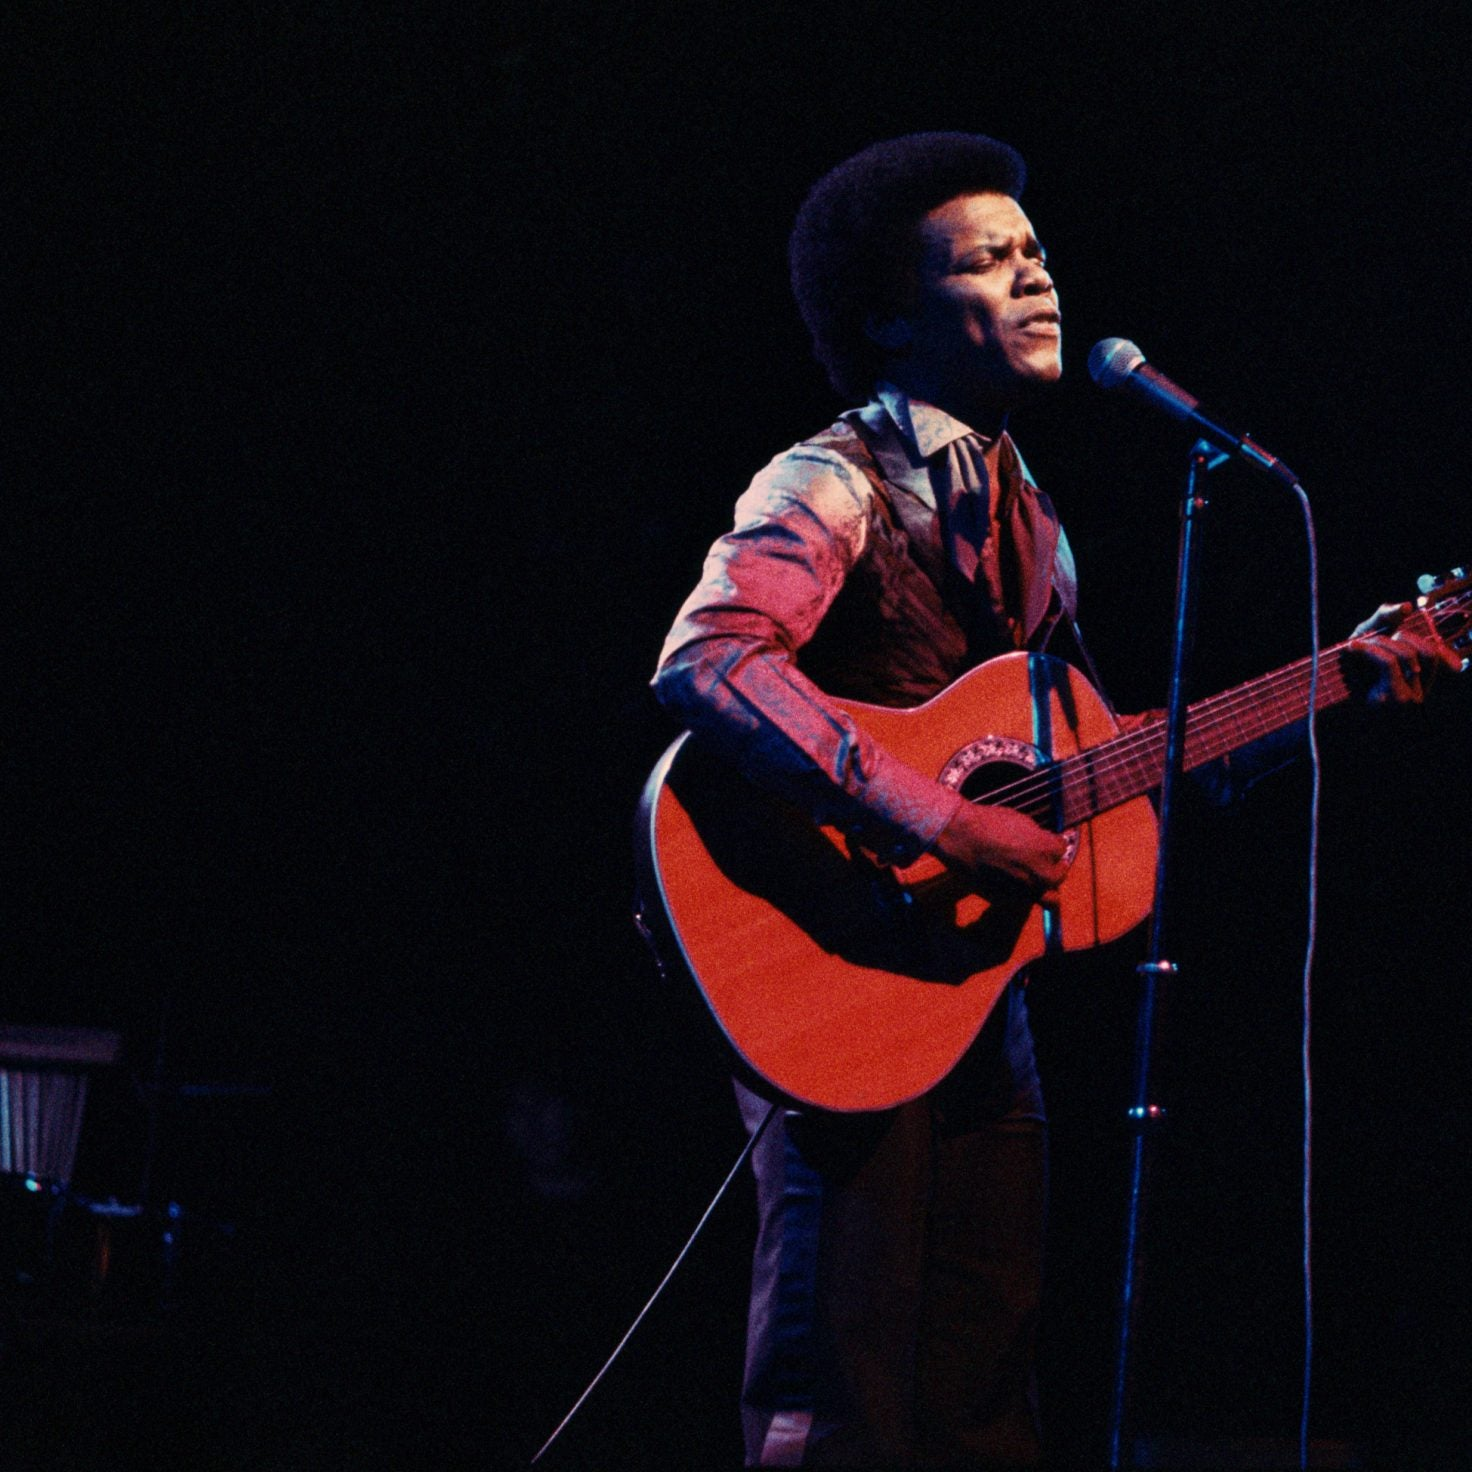 'I Can See Clearly Now' Singer Johnny Nash Passes Away At Age 80